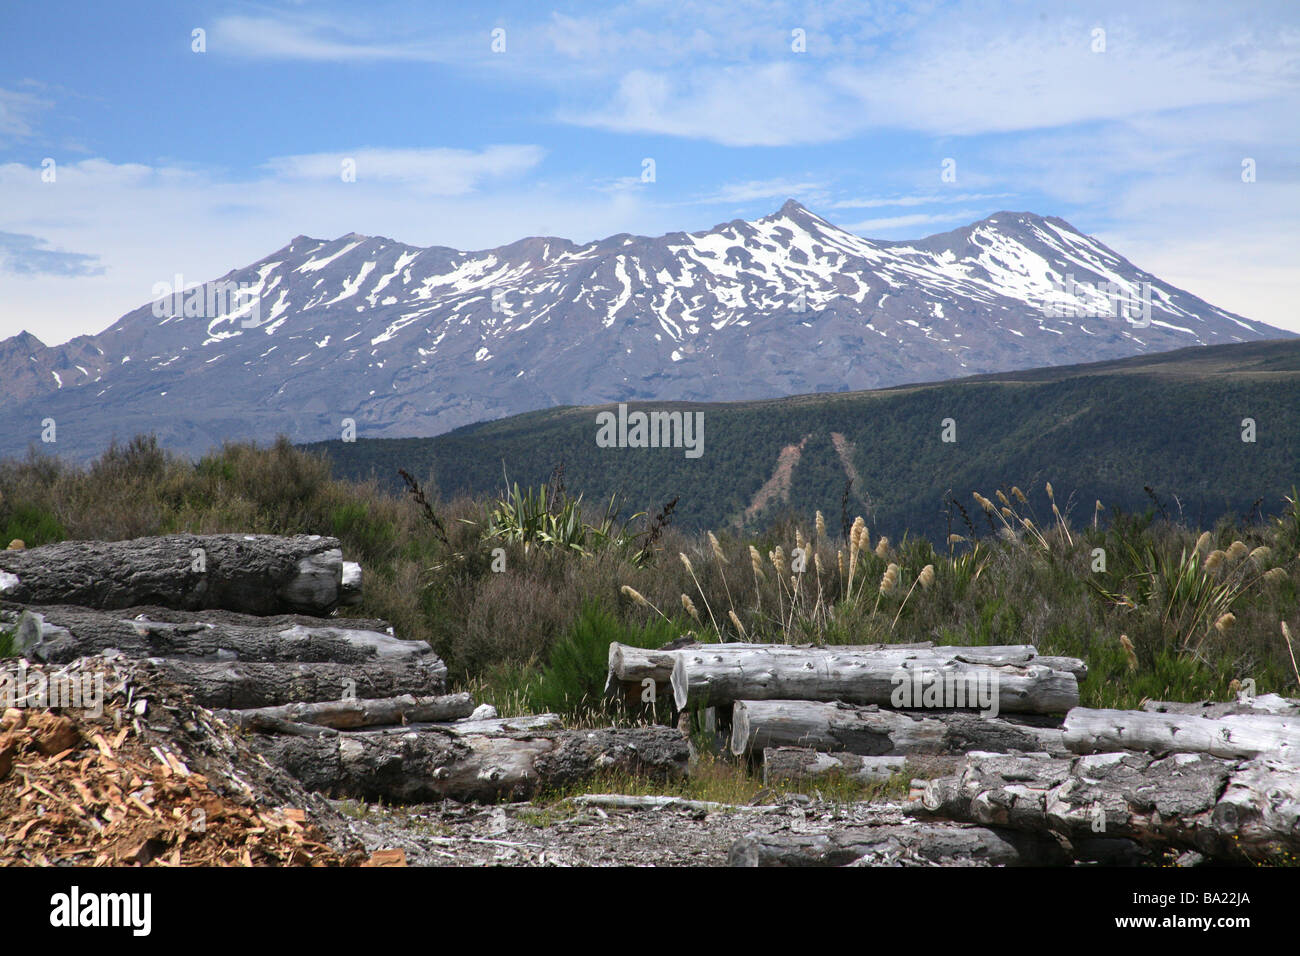 Mount Ruapahu from the overlander train at national park staion newzealand - Stock Image